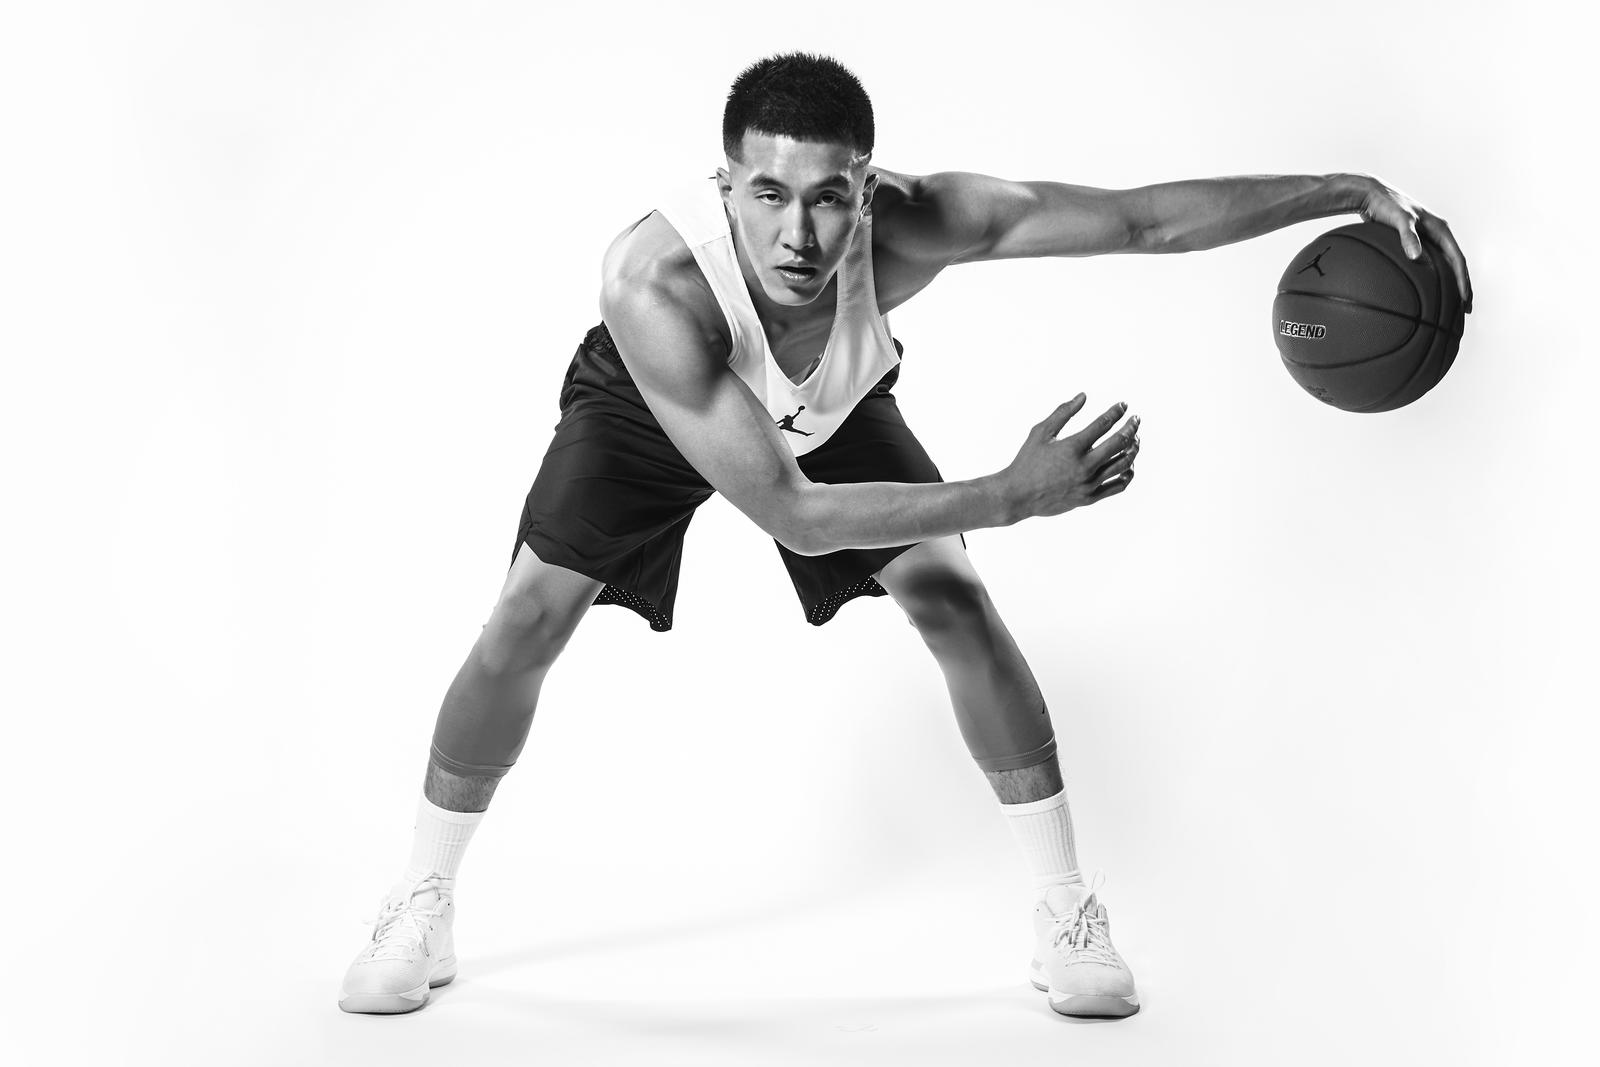 f0e3742bba9f Jordan Brand Welcomes Chinese Basketball Star Guo Ailun to the Family 1